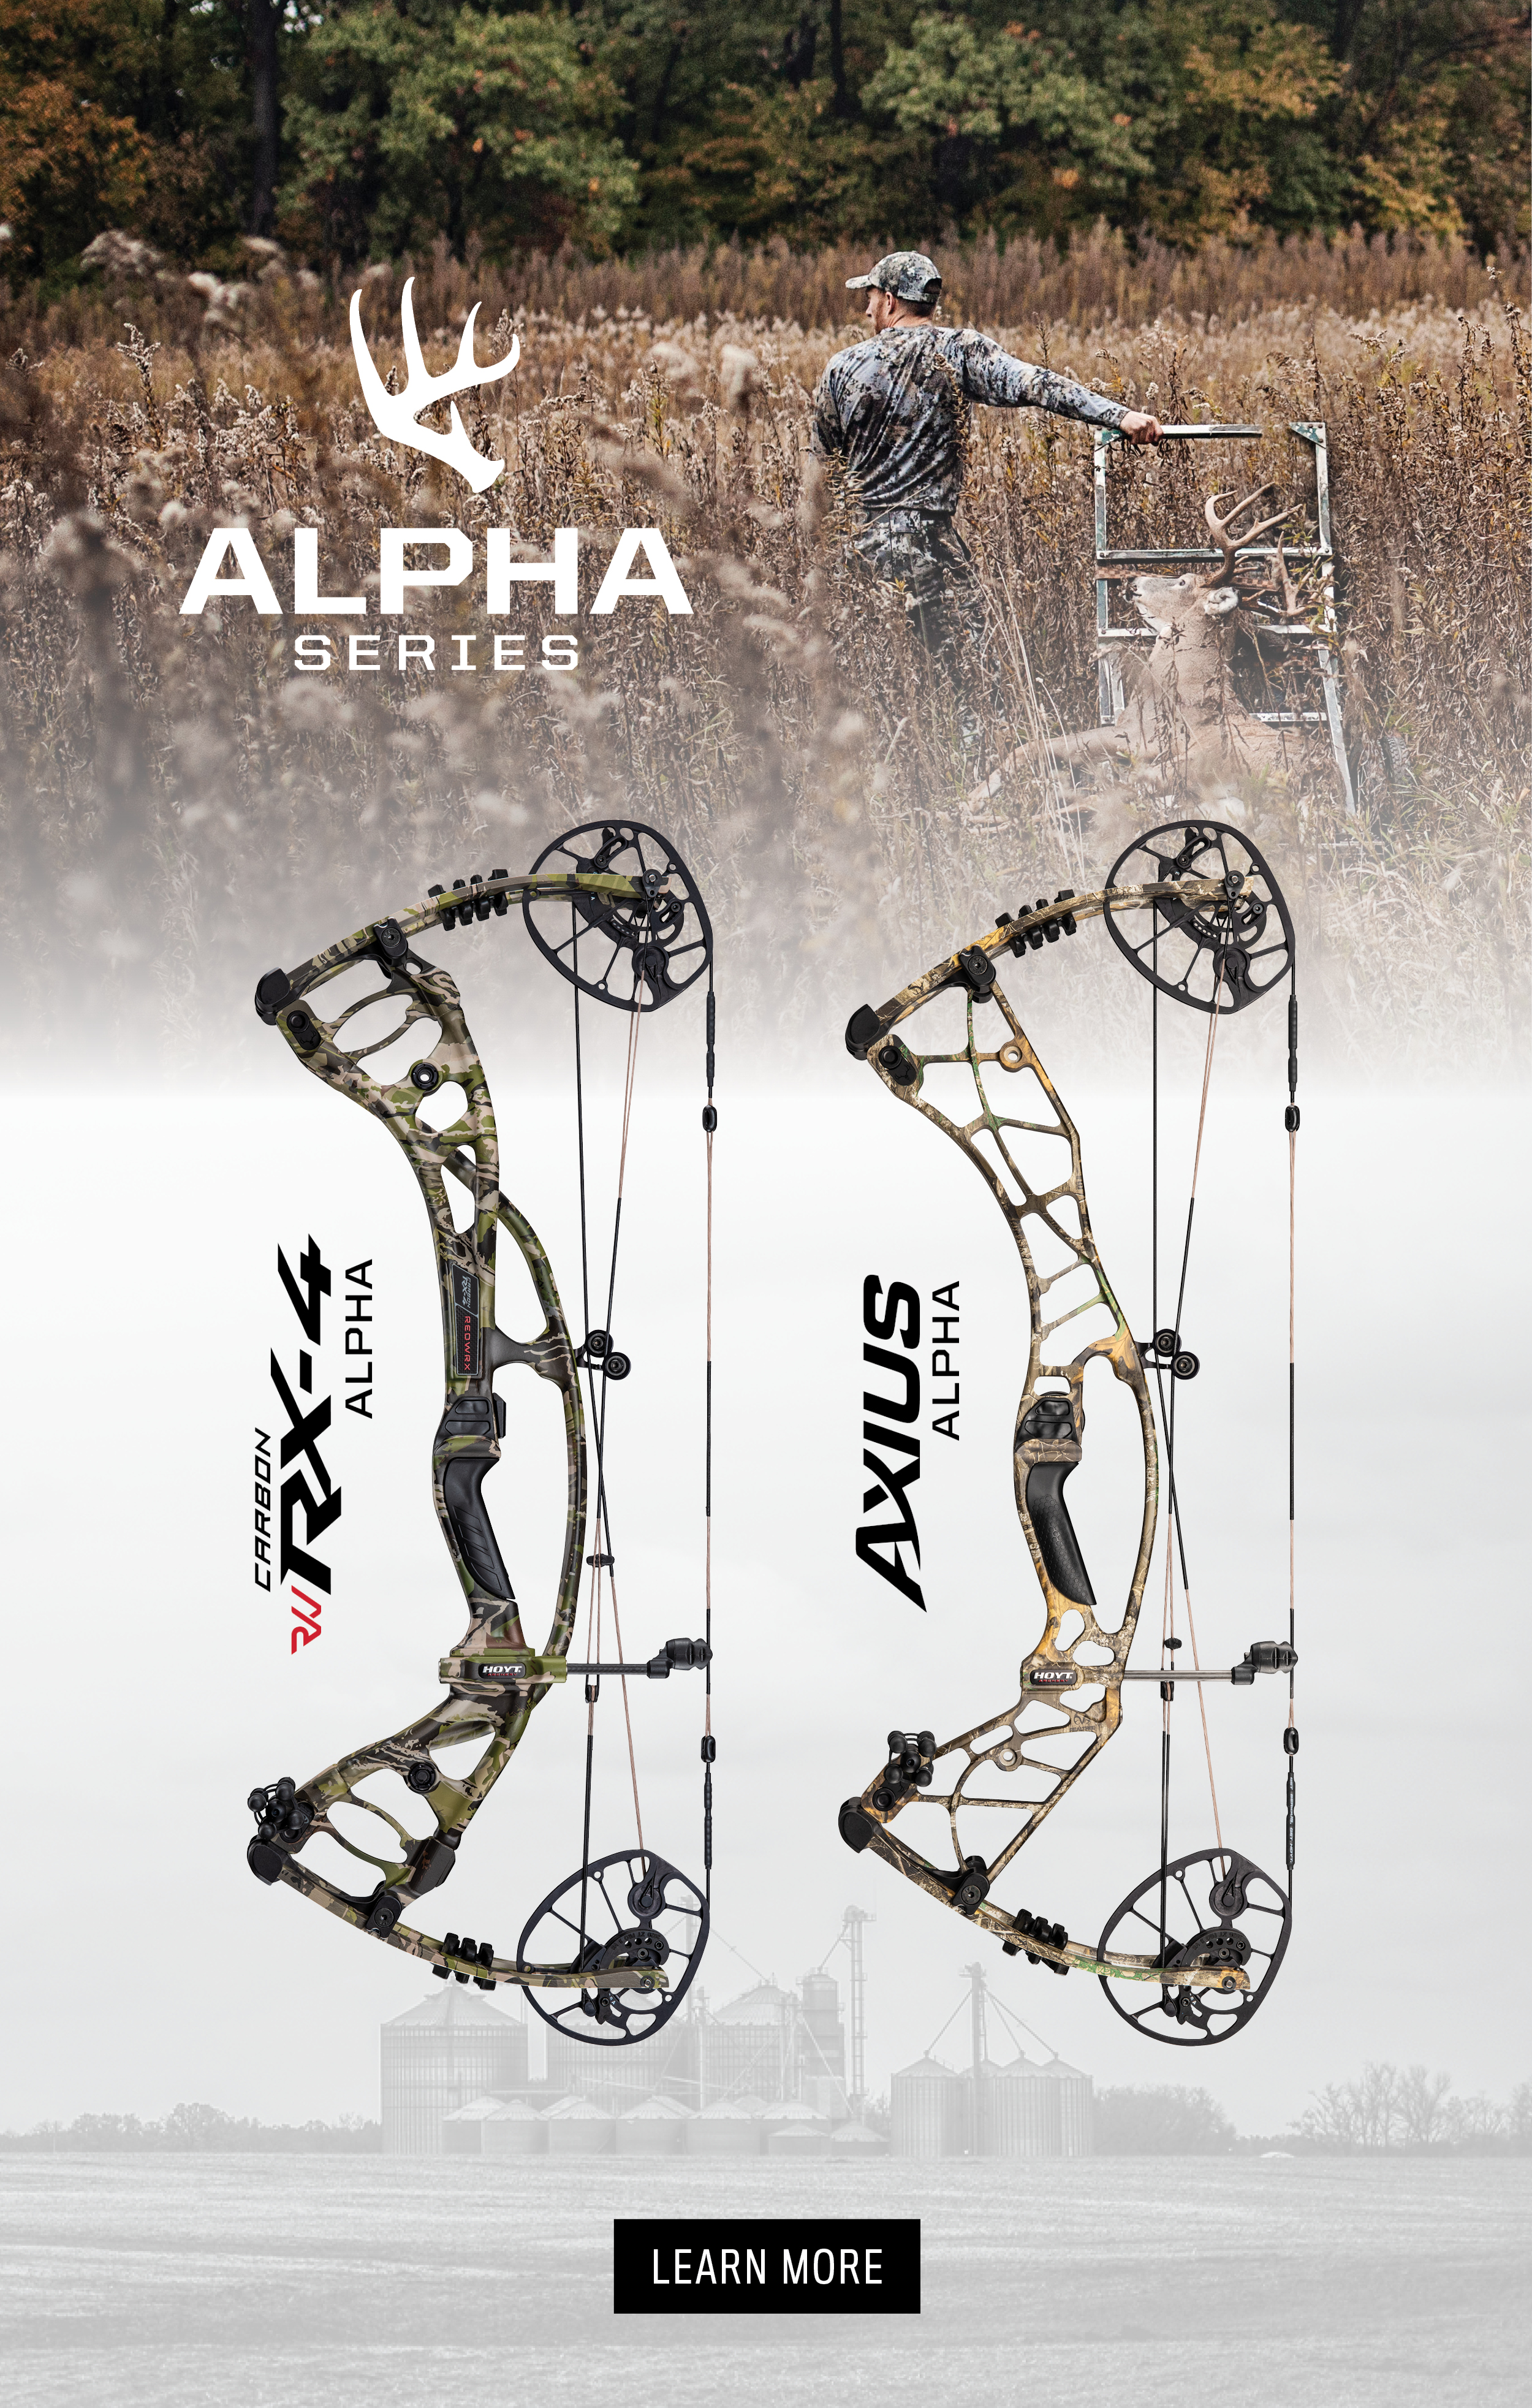 Best Compound Bow 2020.Hoyt Introduces 2020 Hunting Bows Hoyt Archery